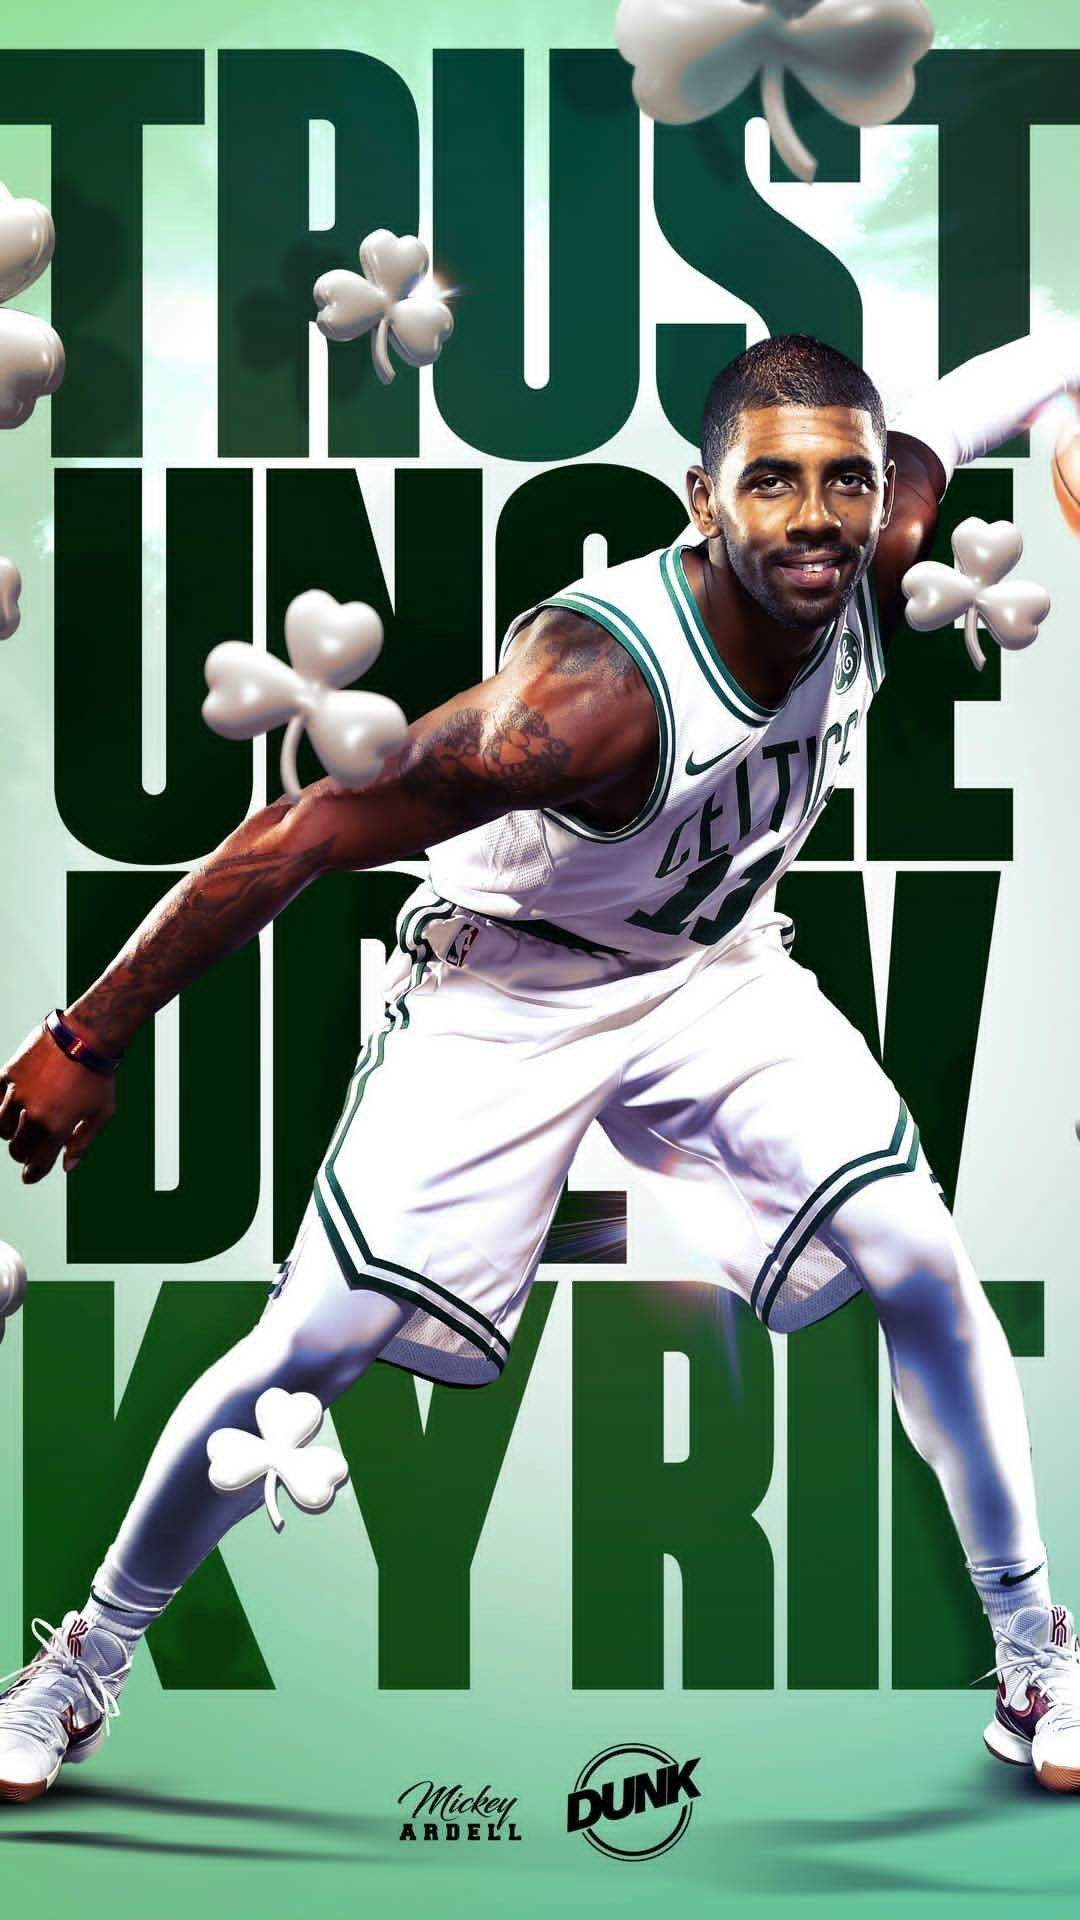 KYRIE IRVING WALLPAPER Irving wallpapers Kyrie irving celtics 1080x1920